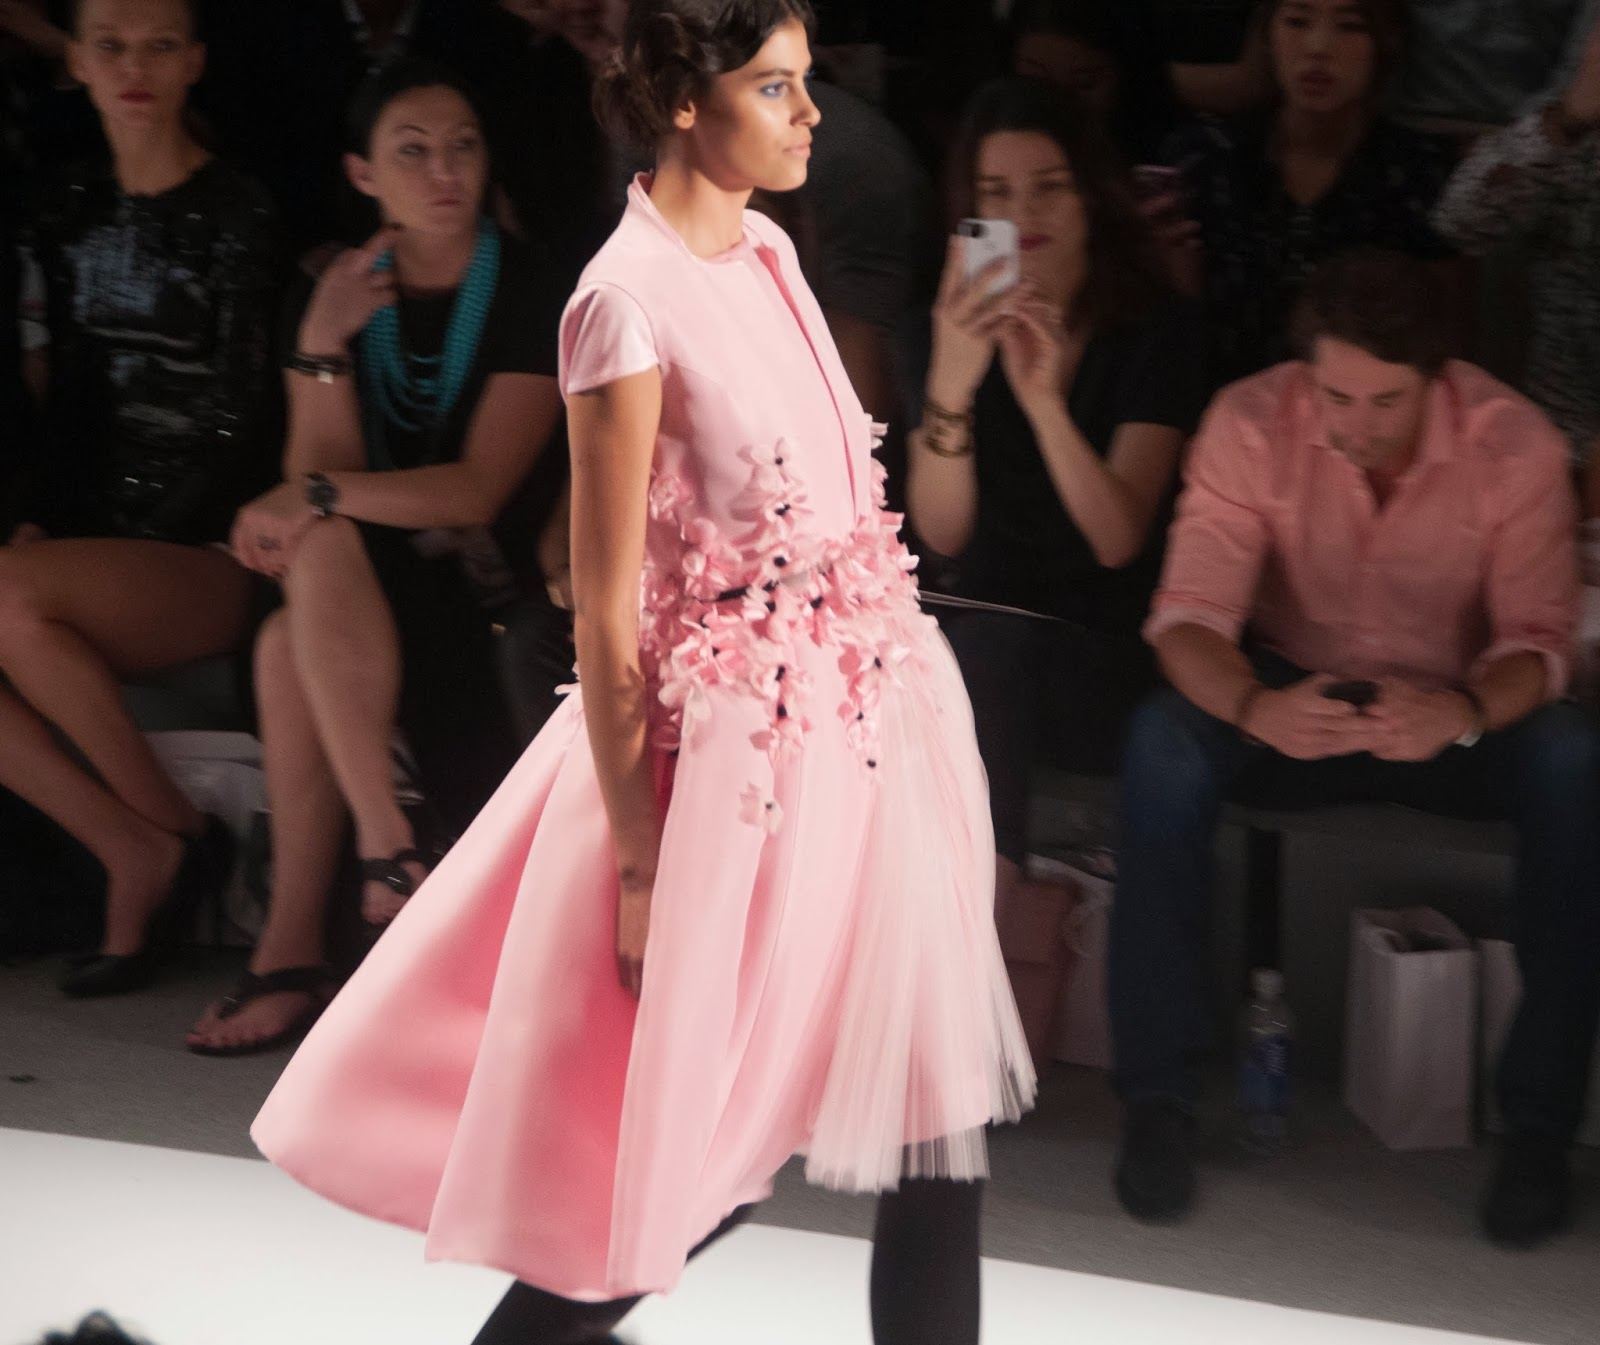 zang toi, zang toi new york fashion week runway, new york fashion week designers, new york fashion week, spring summer 2014 fashions, zang toi ballet babe runway show, zang toi 2014